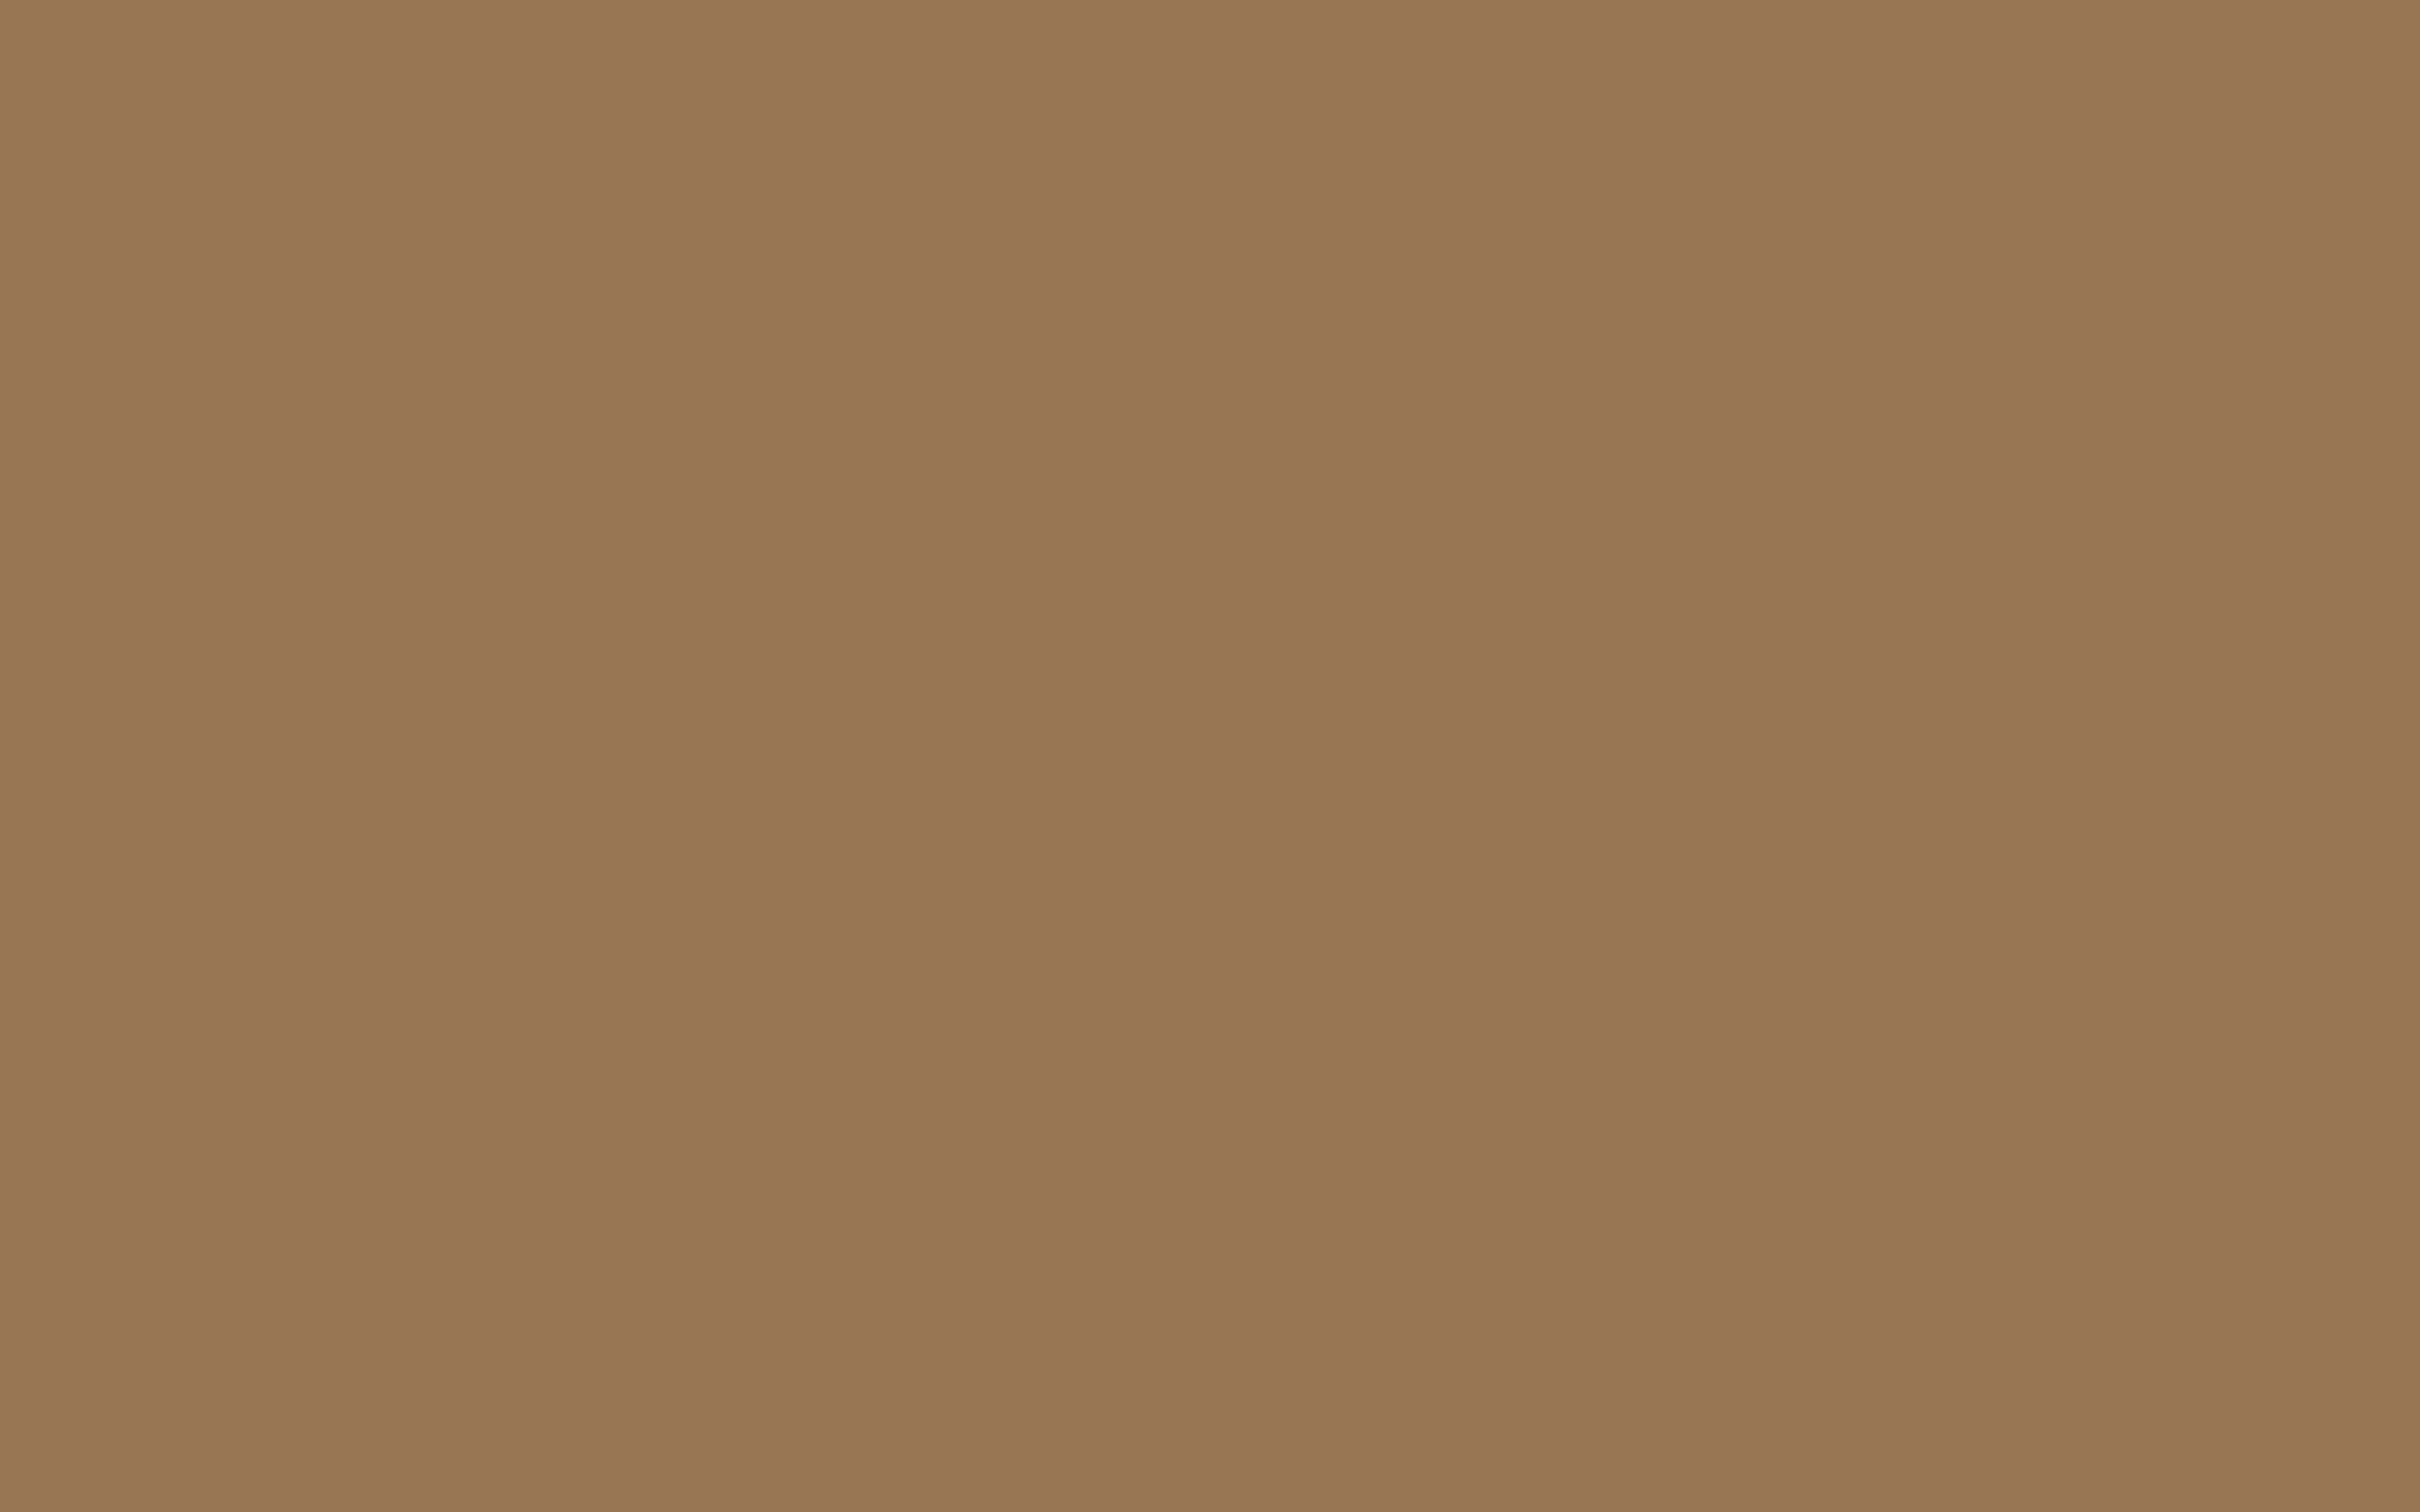 2560x1600 Pale Brown Solid Color Background